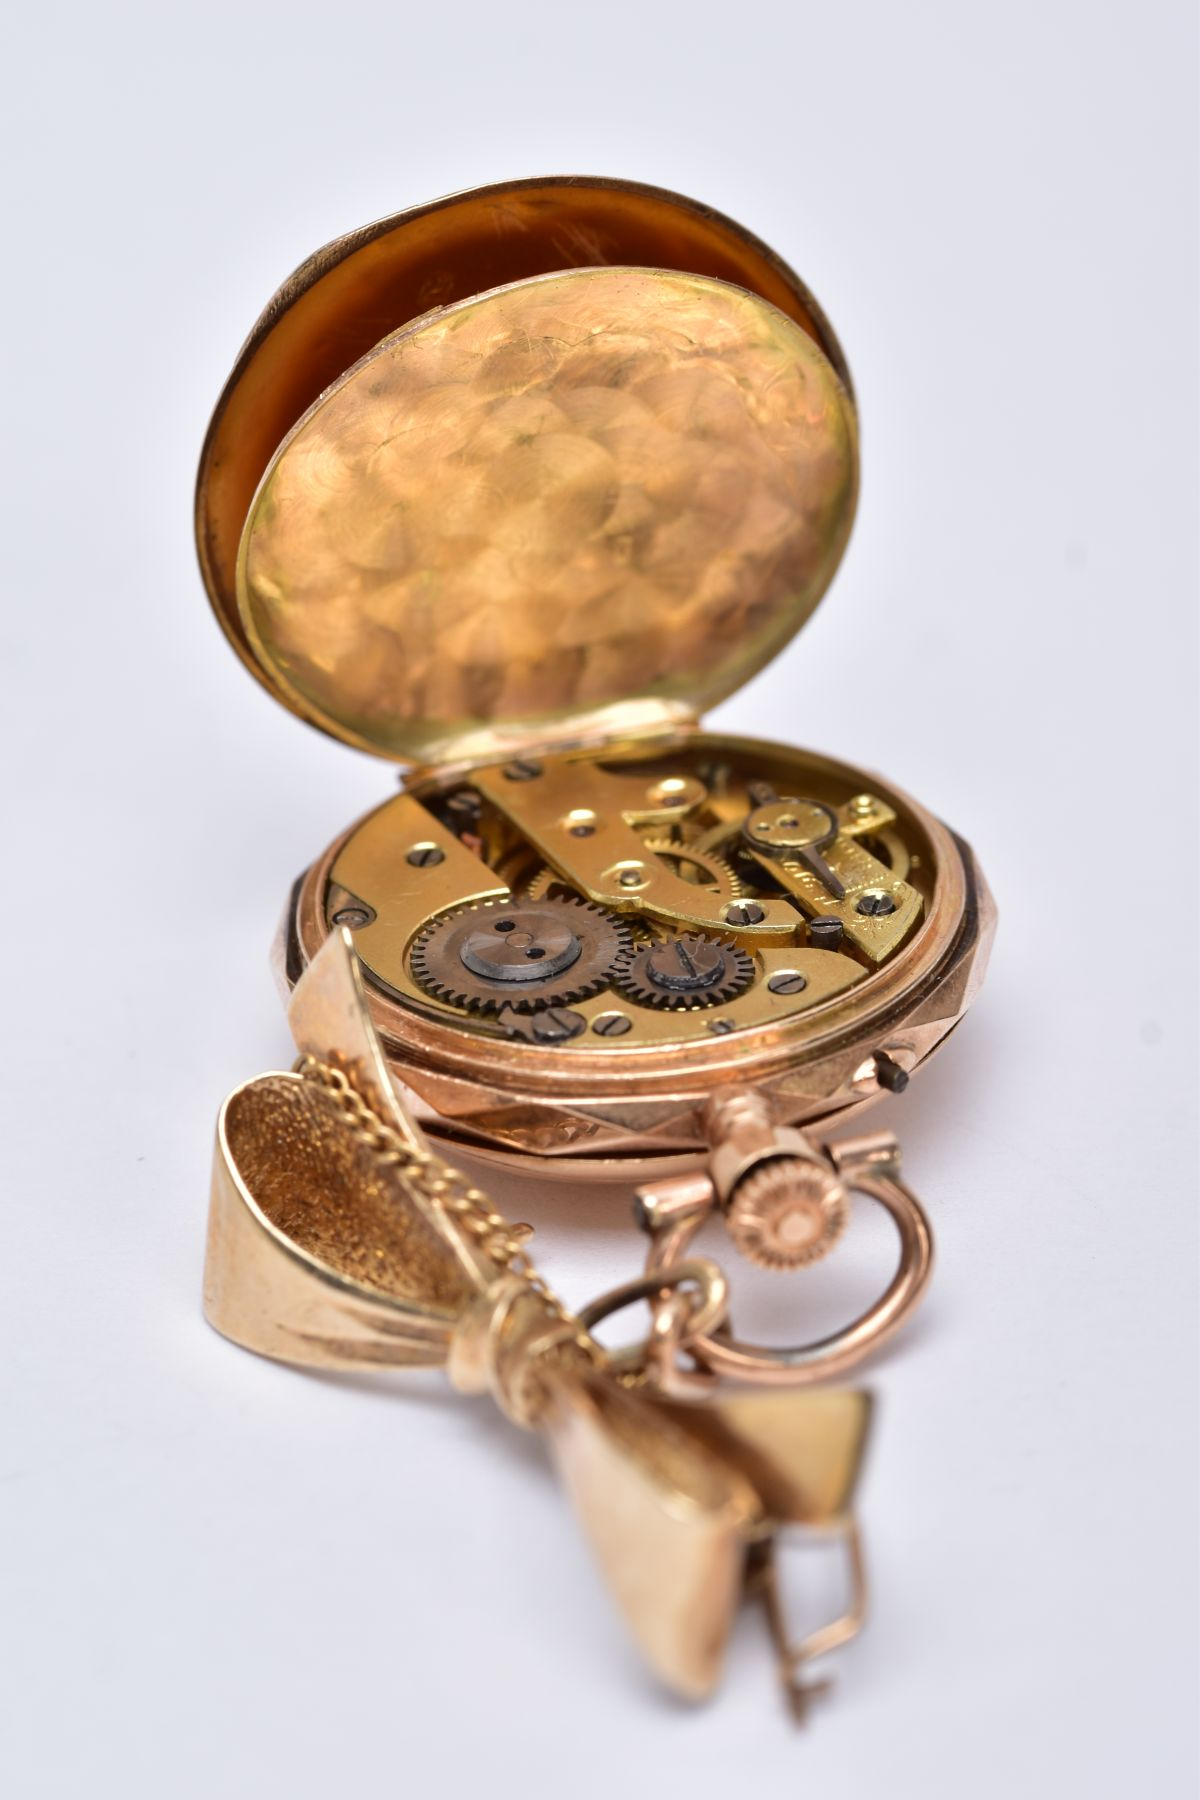 AN EARLY 20TH CENTURY GOLD AND DIAMOND LADY'S FOB WATCH, white enamel dial signed 'Elba', case - Image 5 of 5